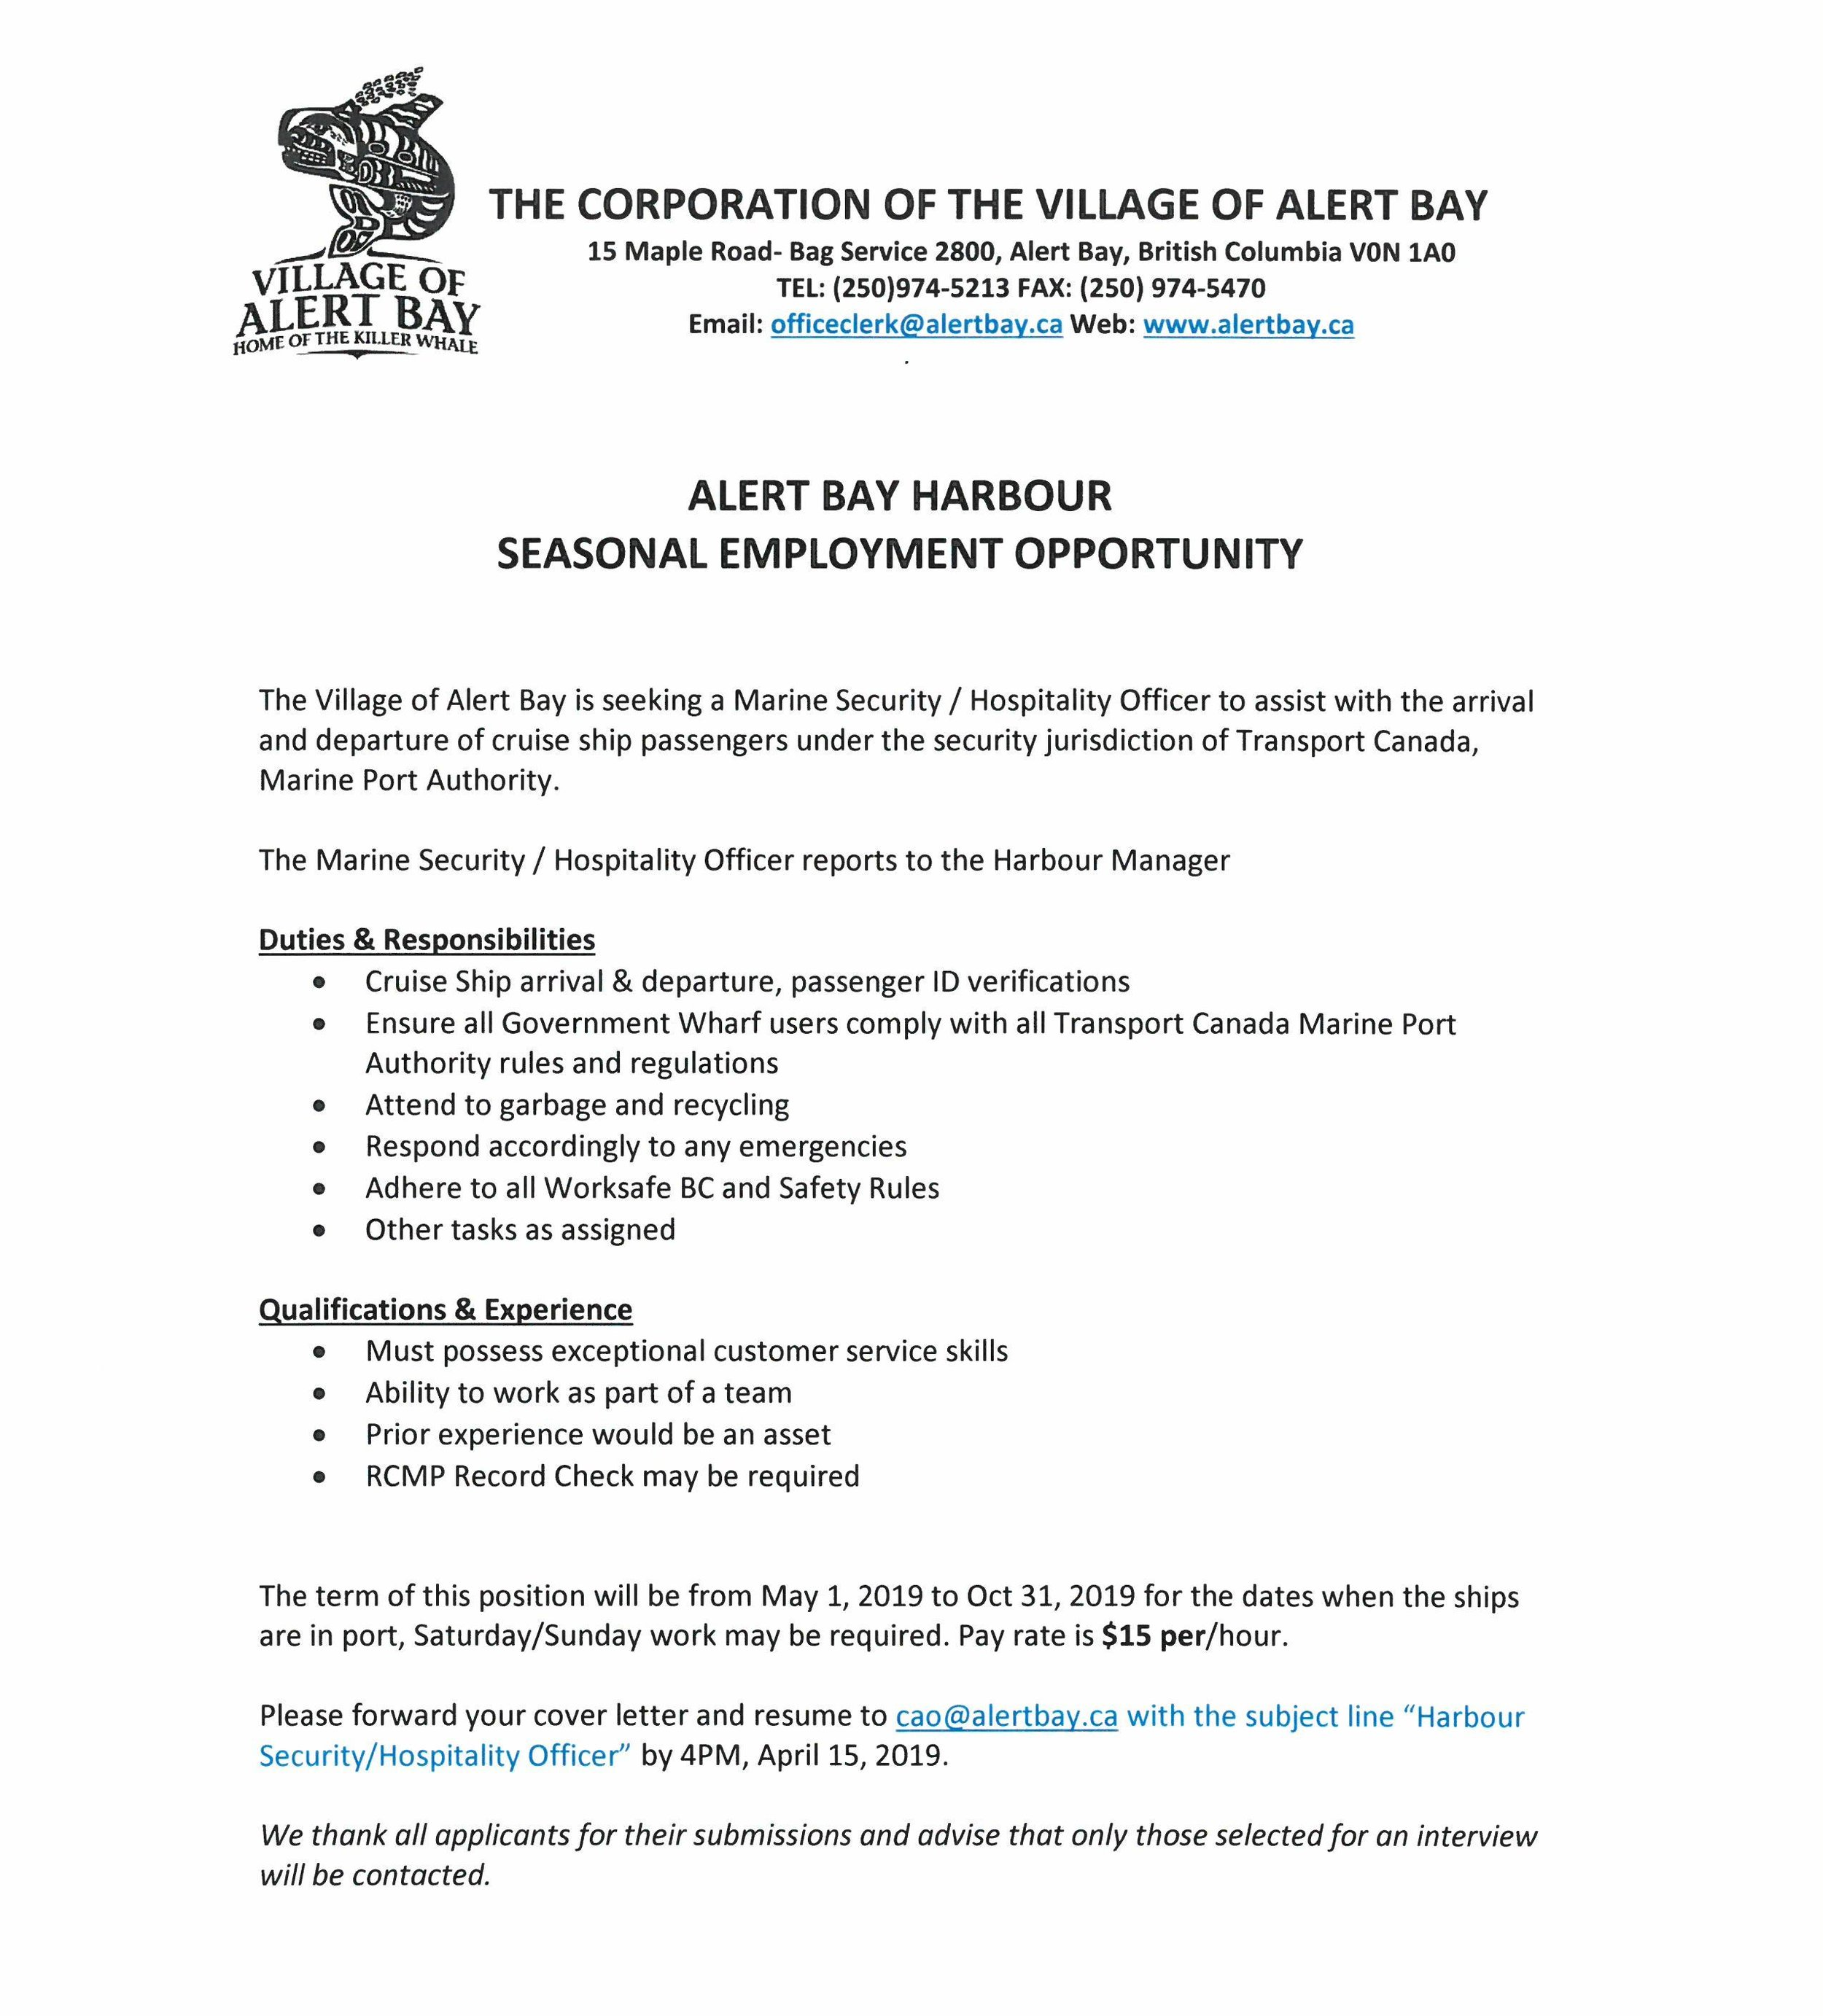 Boat Harbour Seasonal Job Posting 2019jpg.jpg